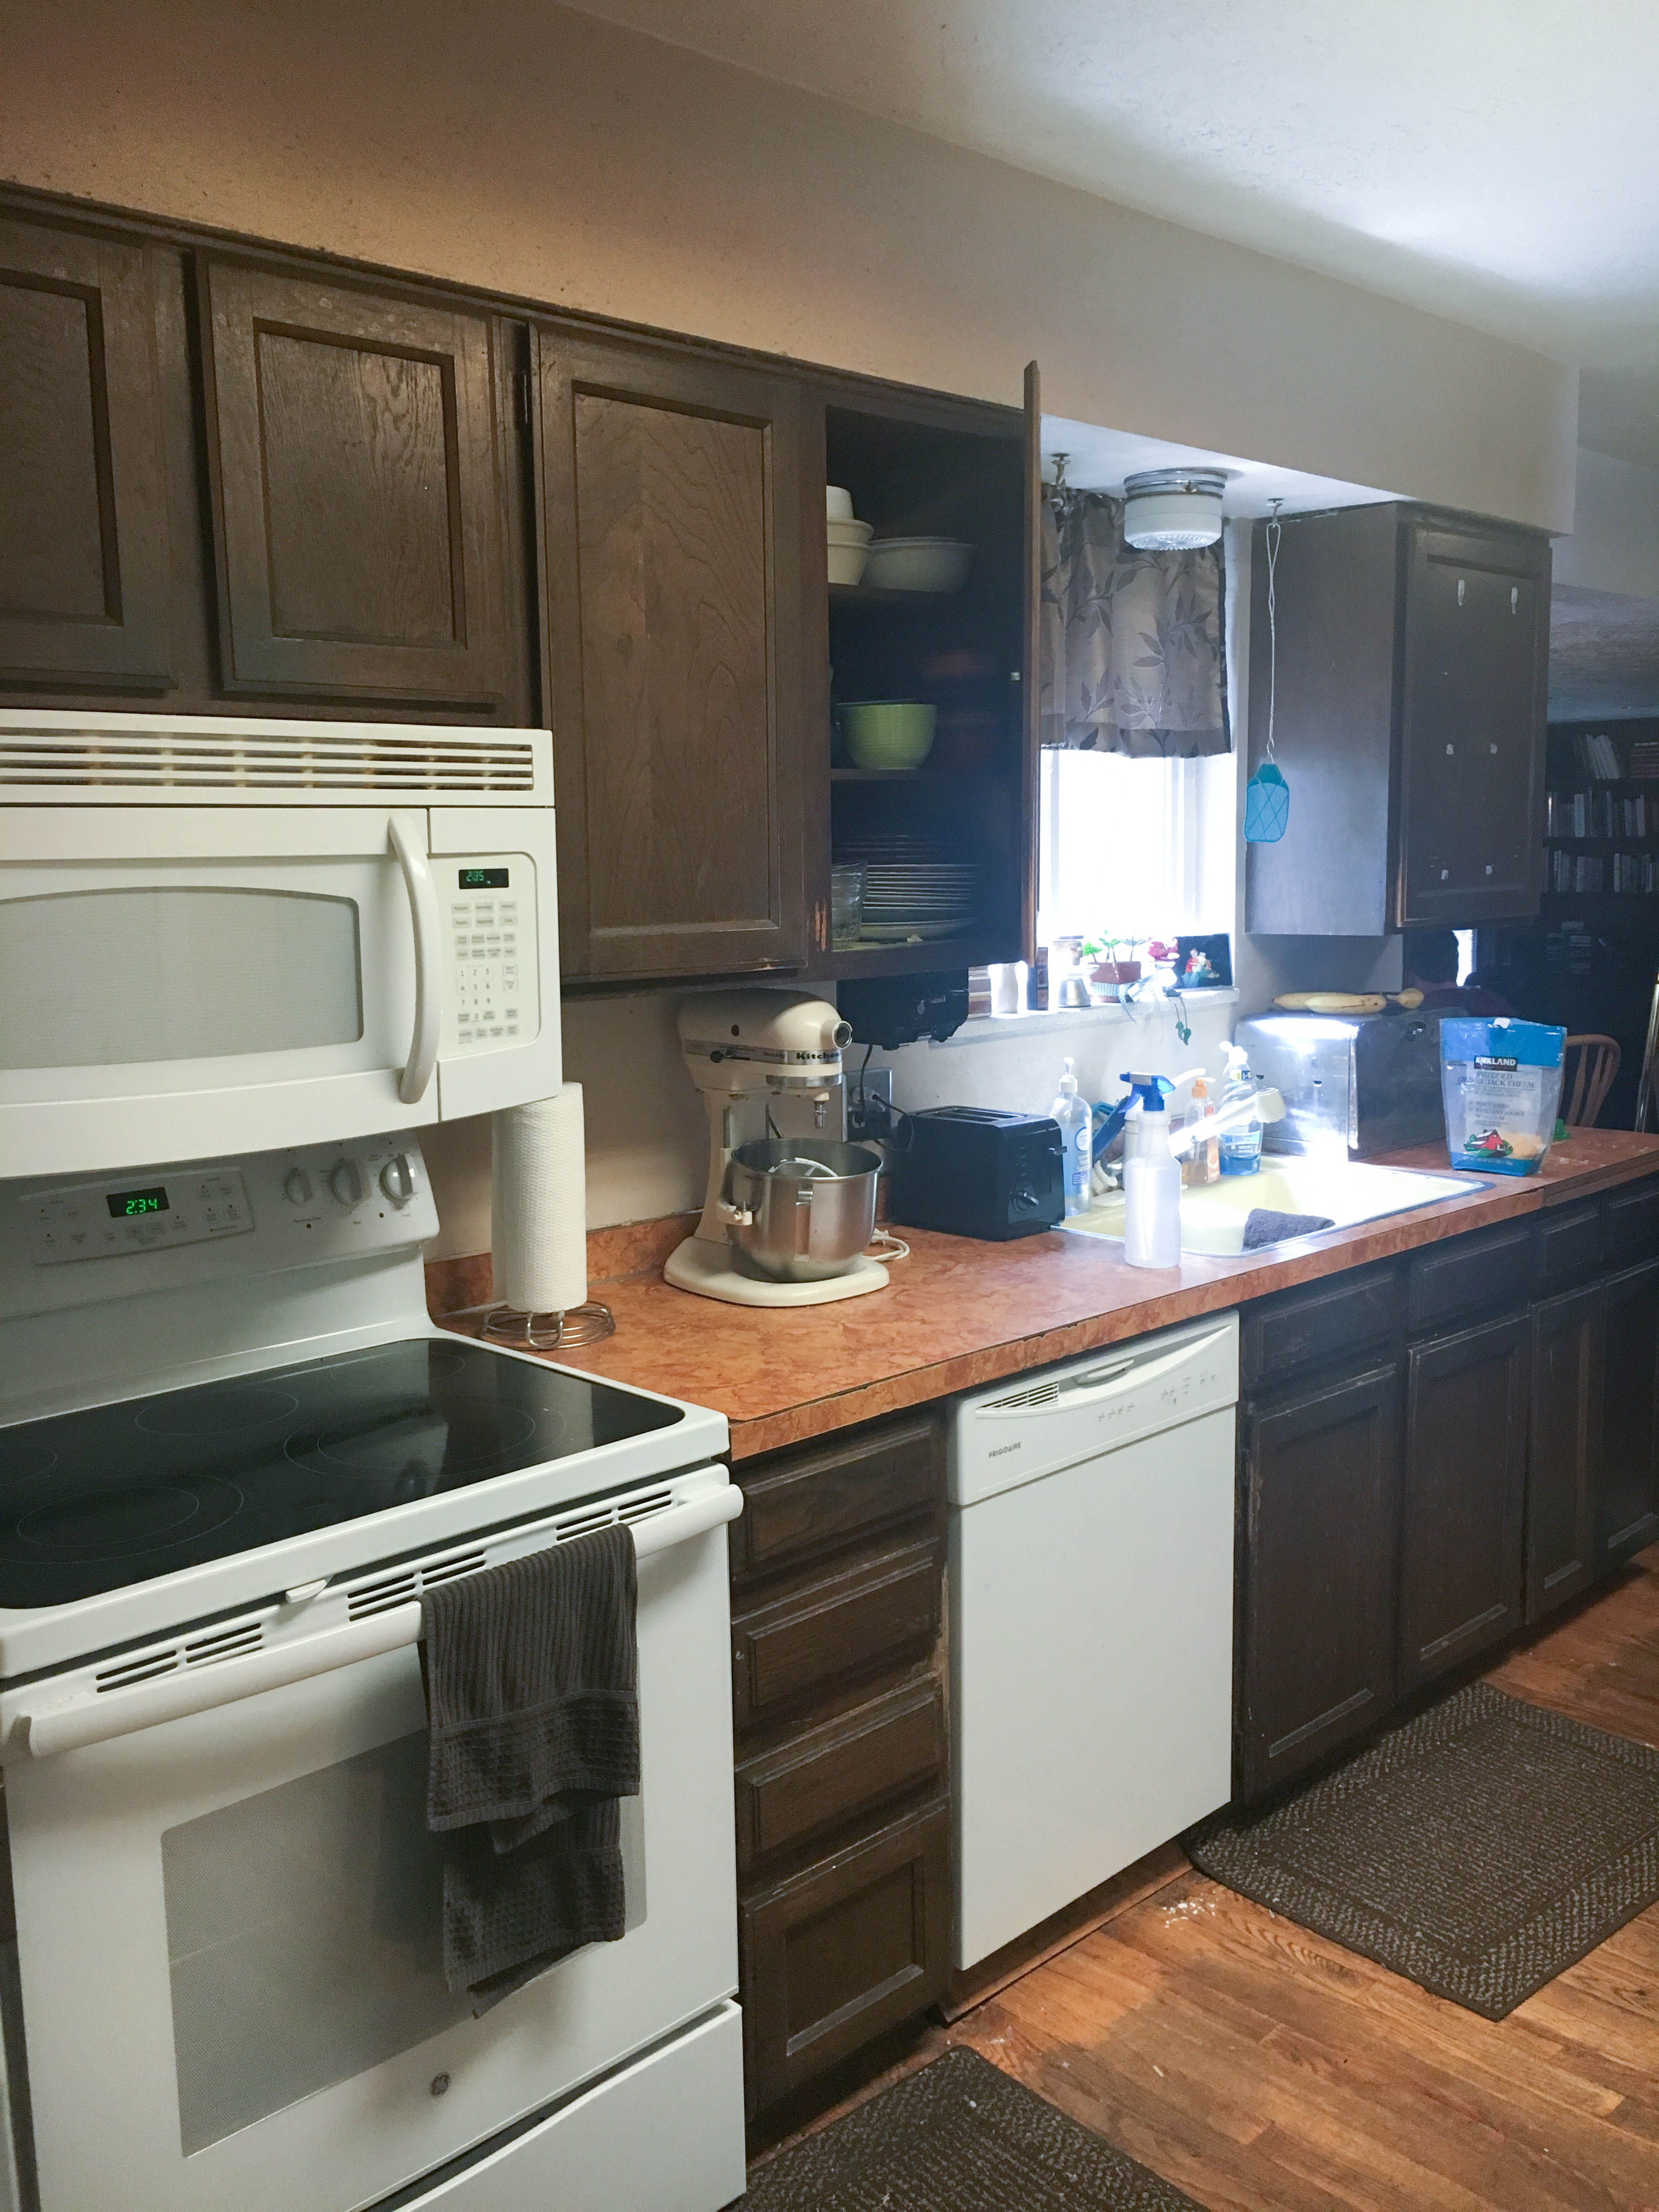 diy-kitchen-countertops (1 of 10)